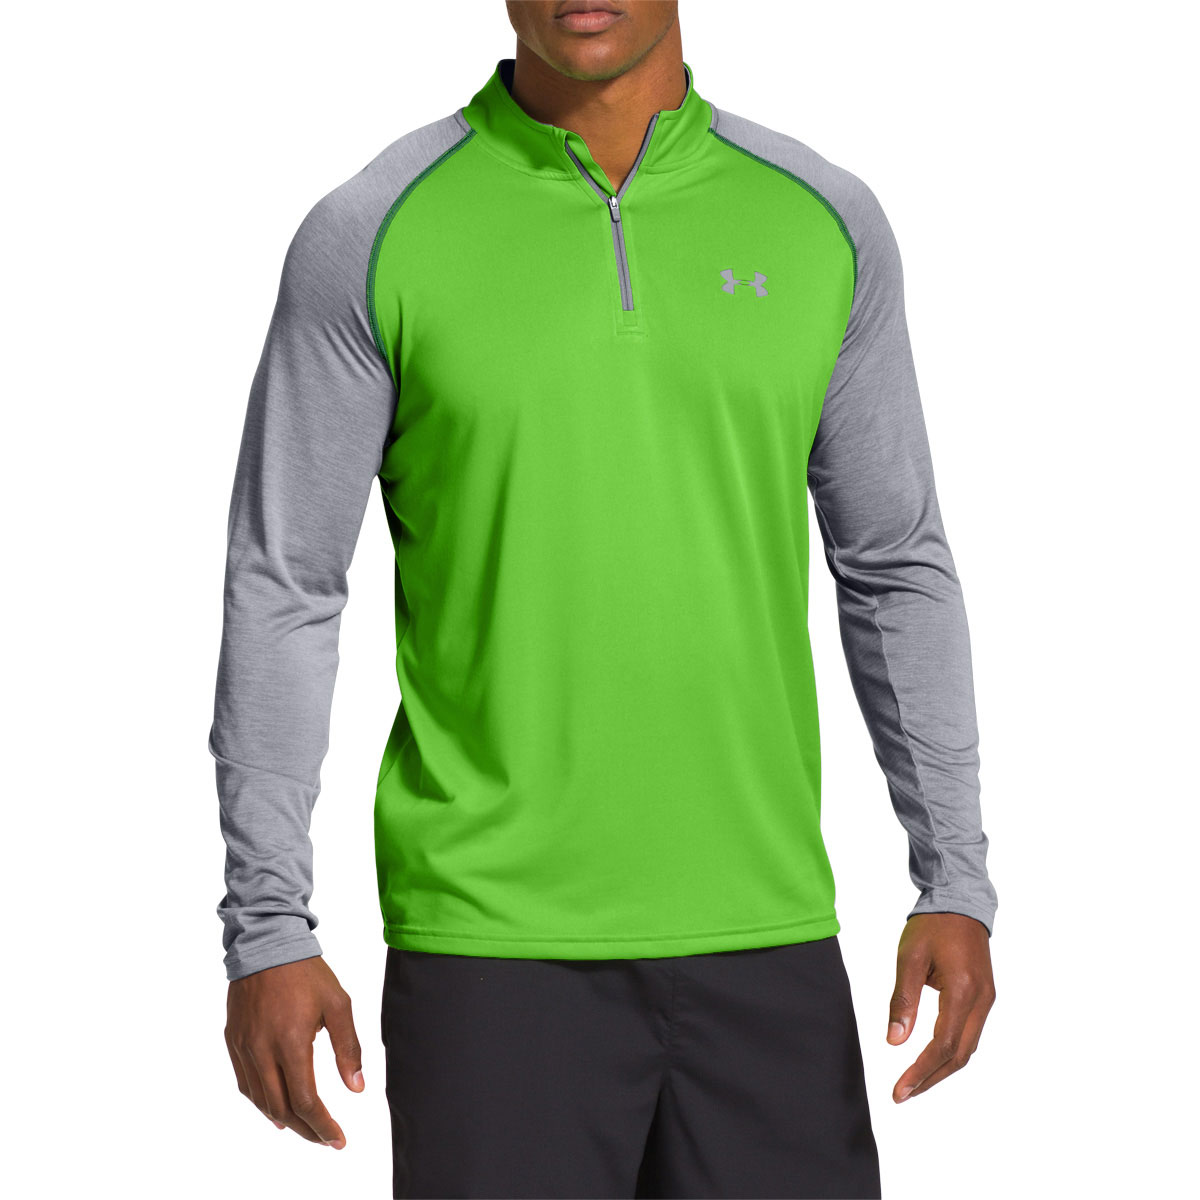 Under-Armour-Mens-UA-Tech-1-4-Zip-Long-Sleeve-Top-Workout-Layer-27-OFF-RRP thumbnail 53